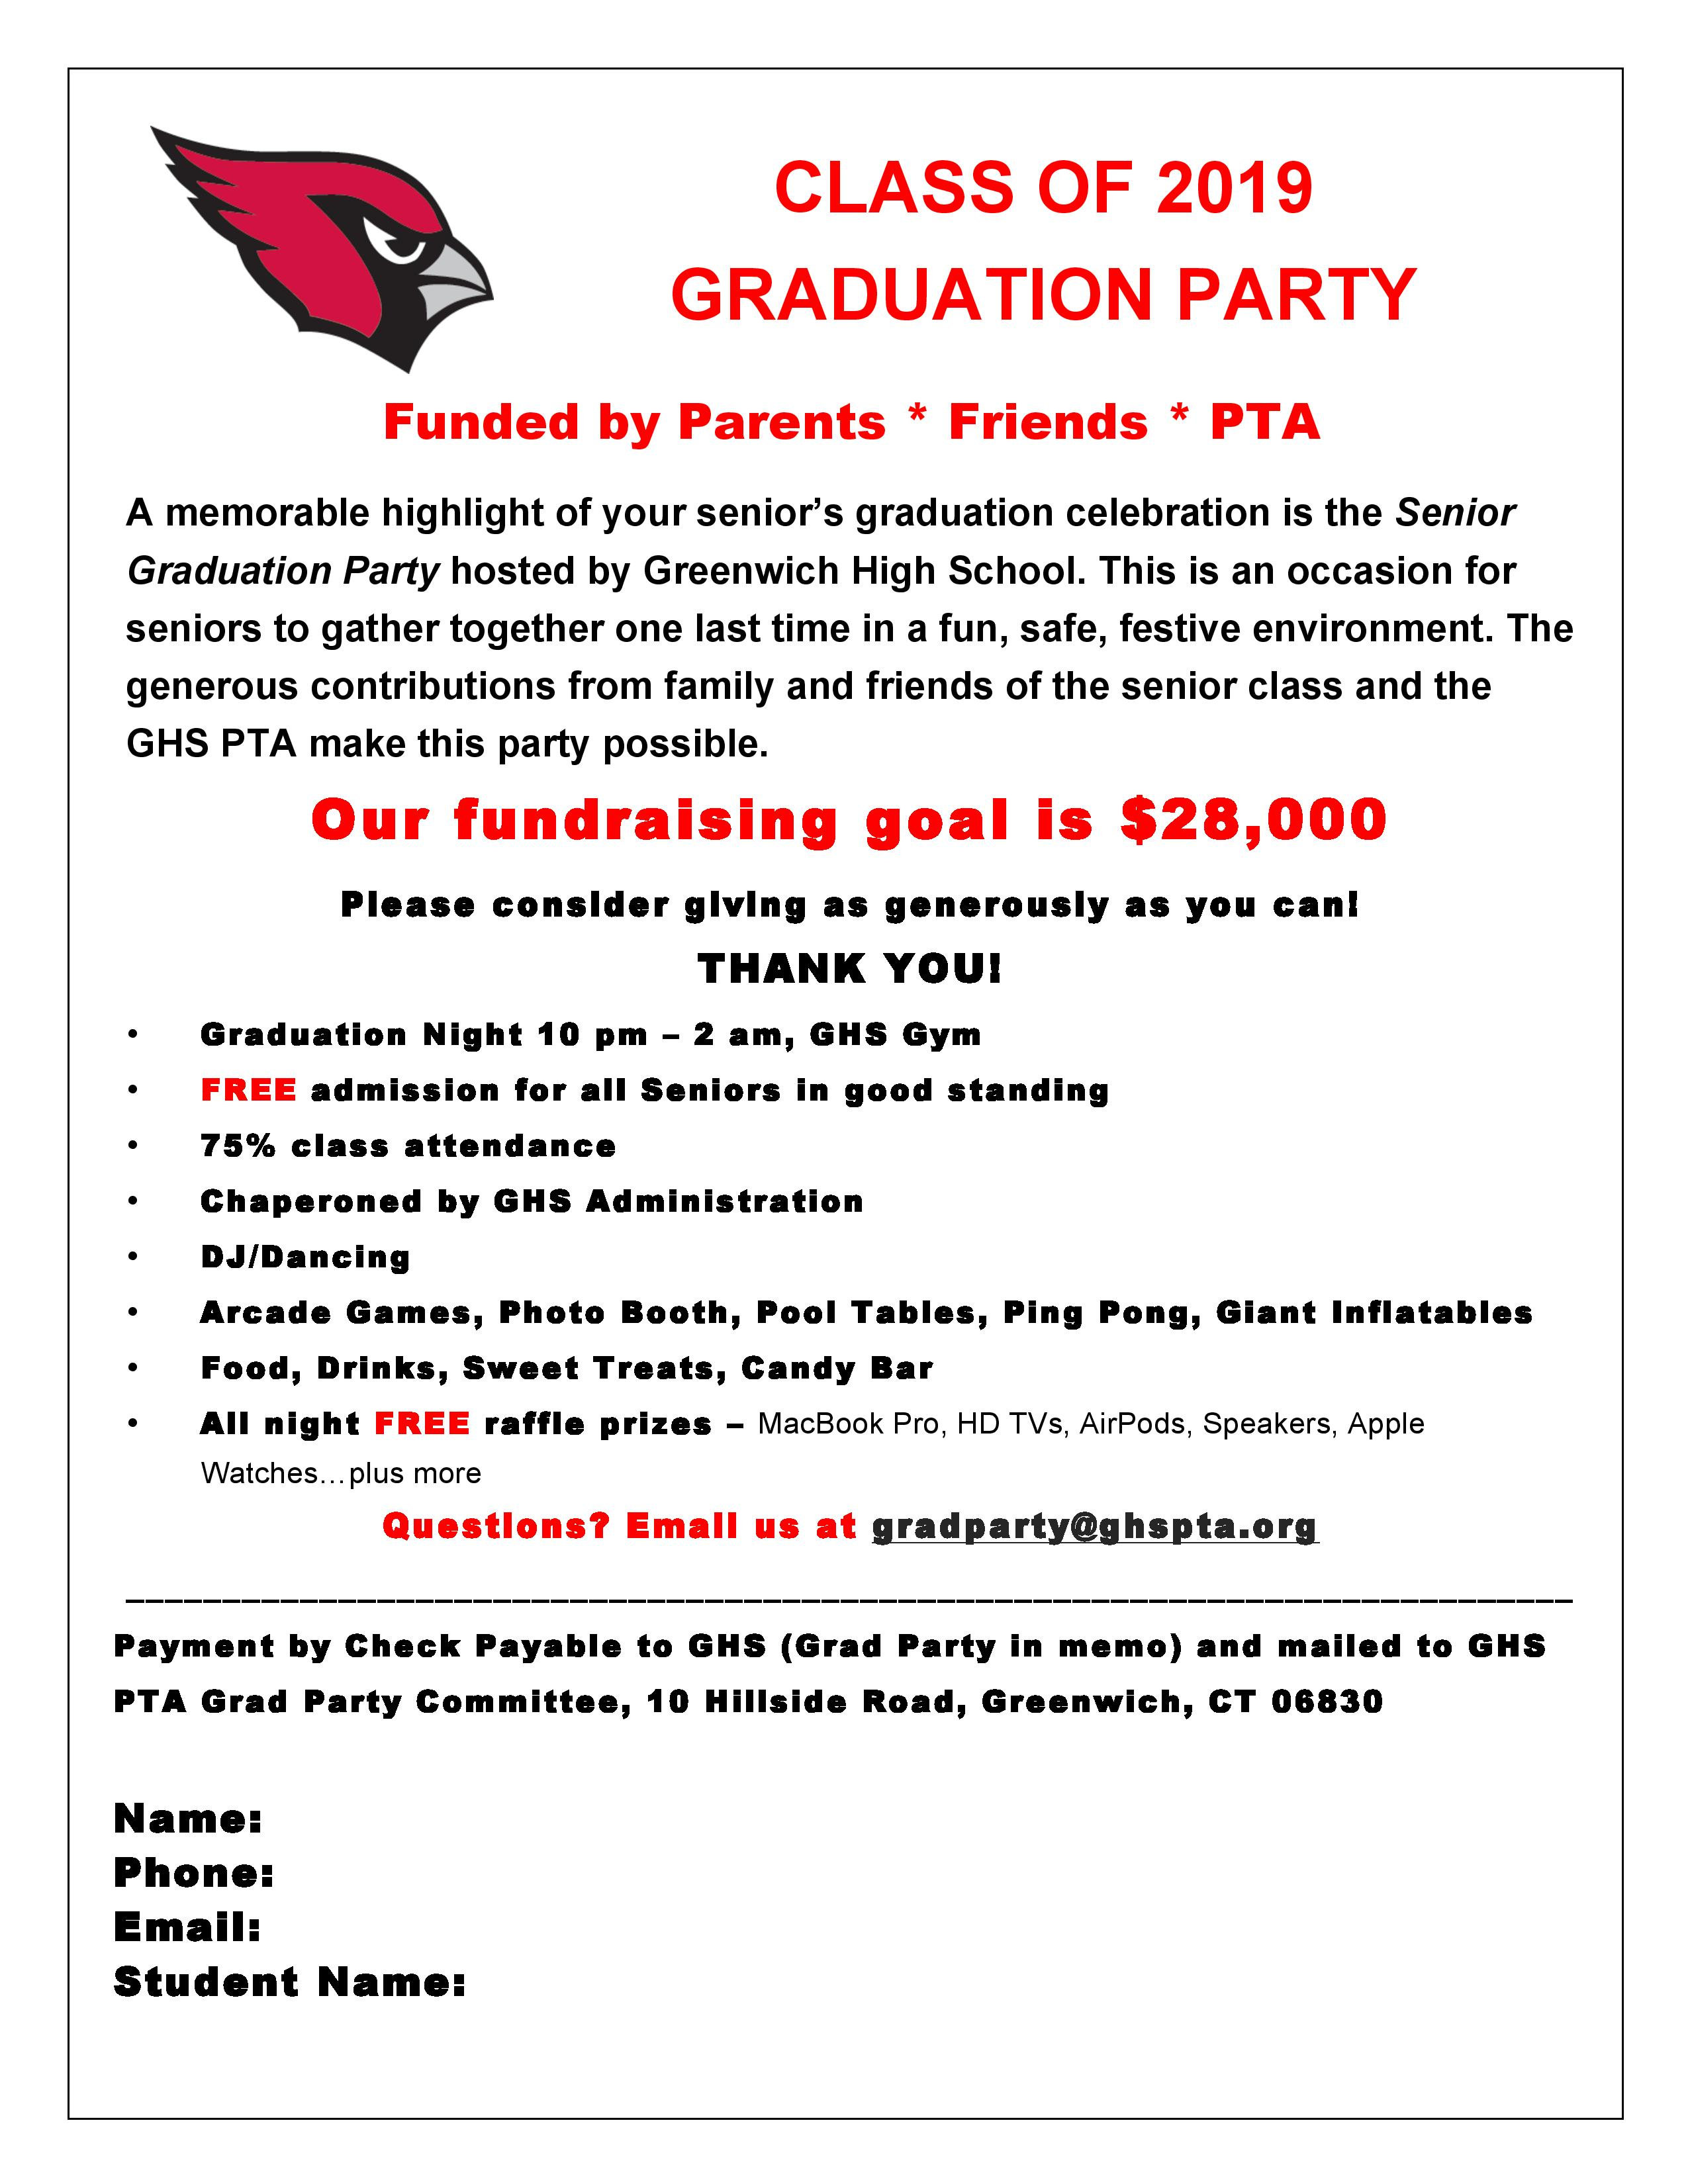 Class of 2019 Graduation Party Donation